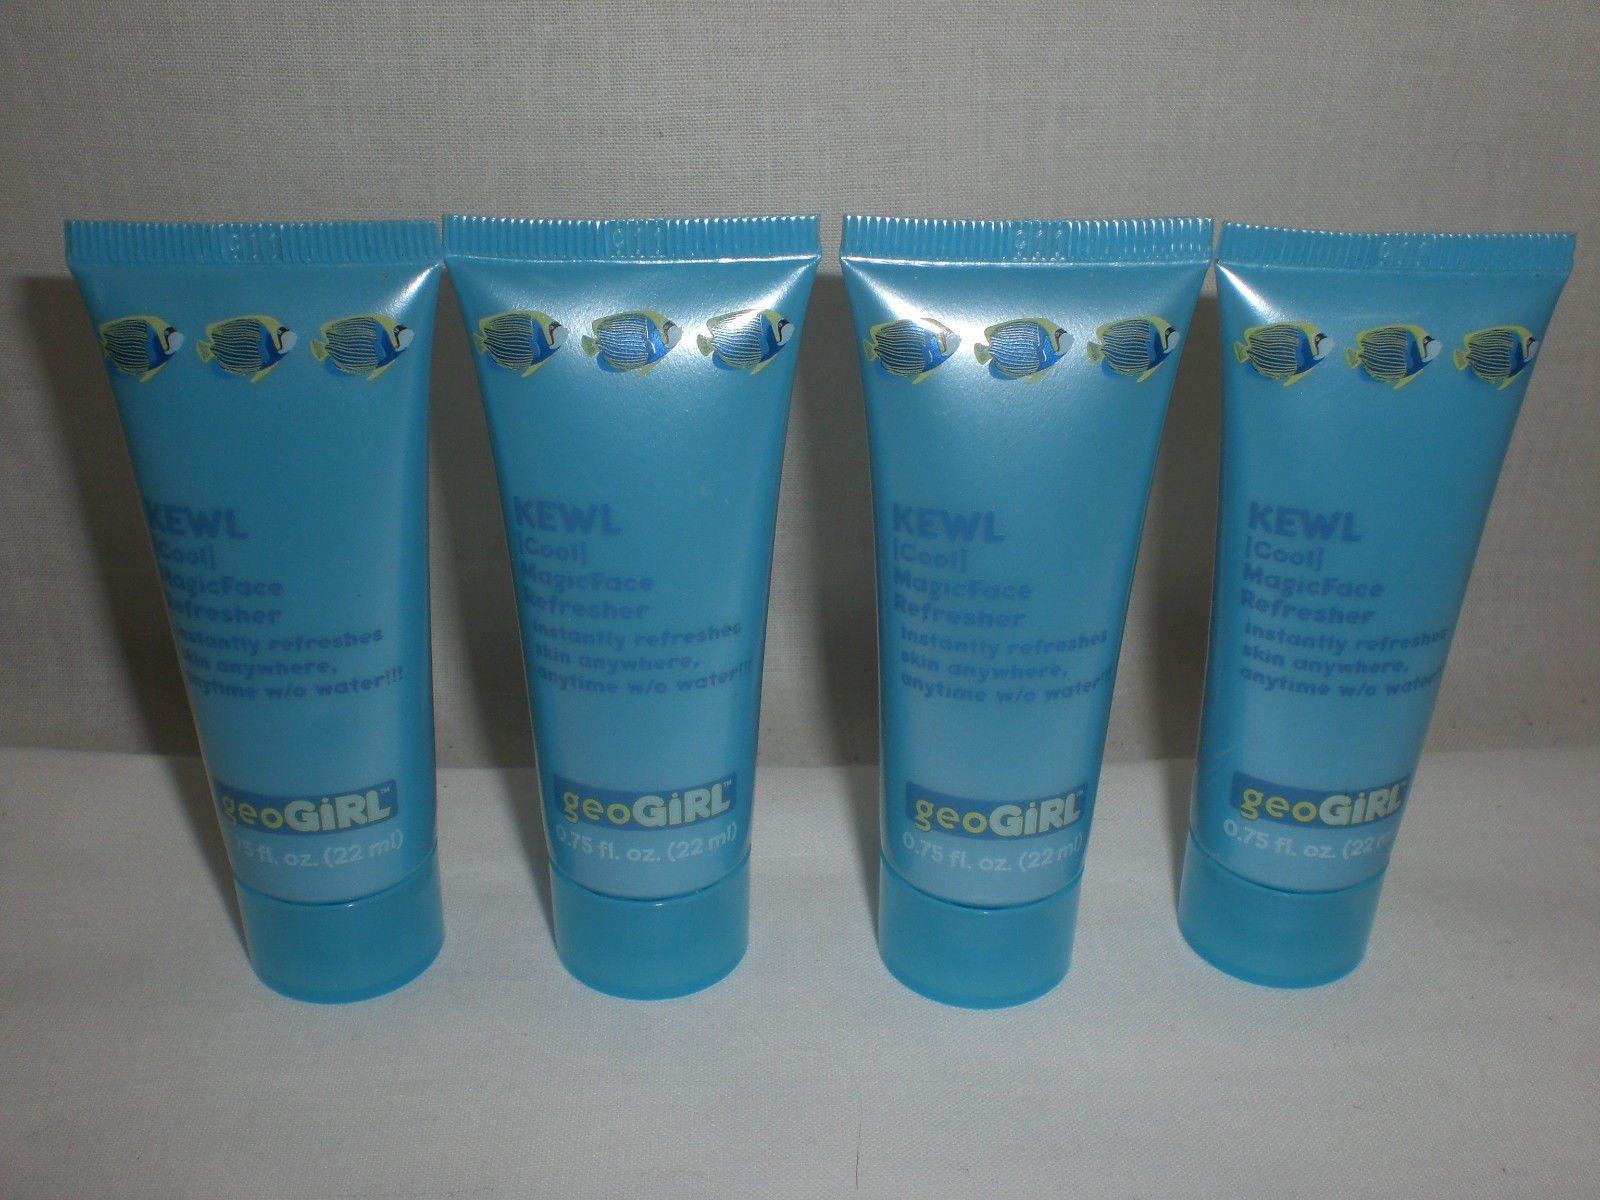 GeoGirl Kewl Cool Magic Face Refresher Skin Controls Oil .75 Oz. Lot of 4 New